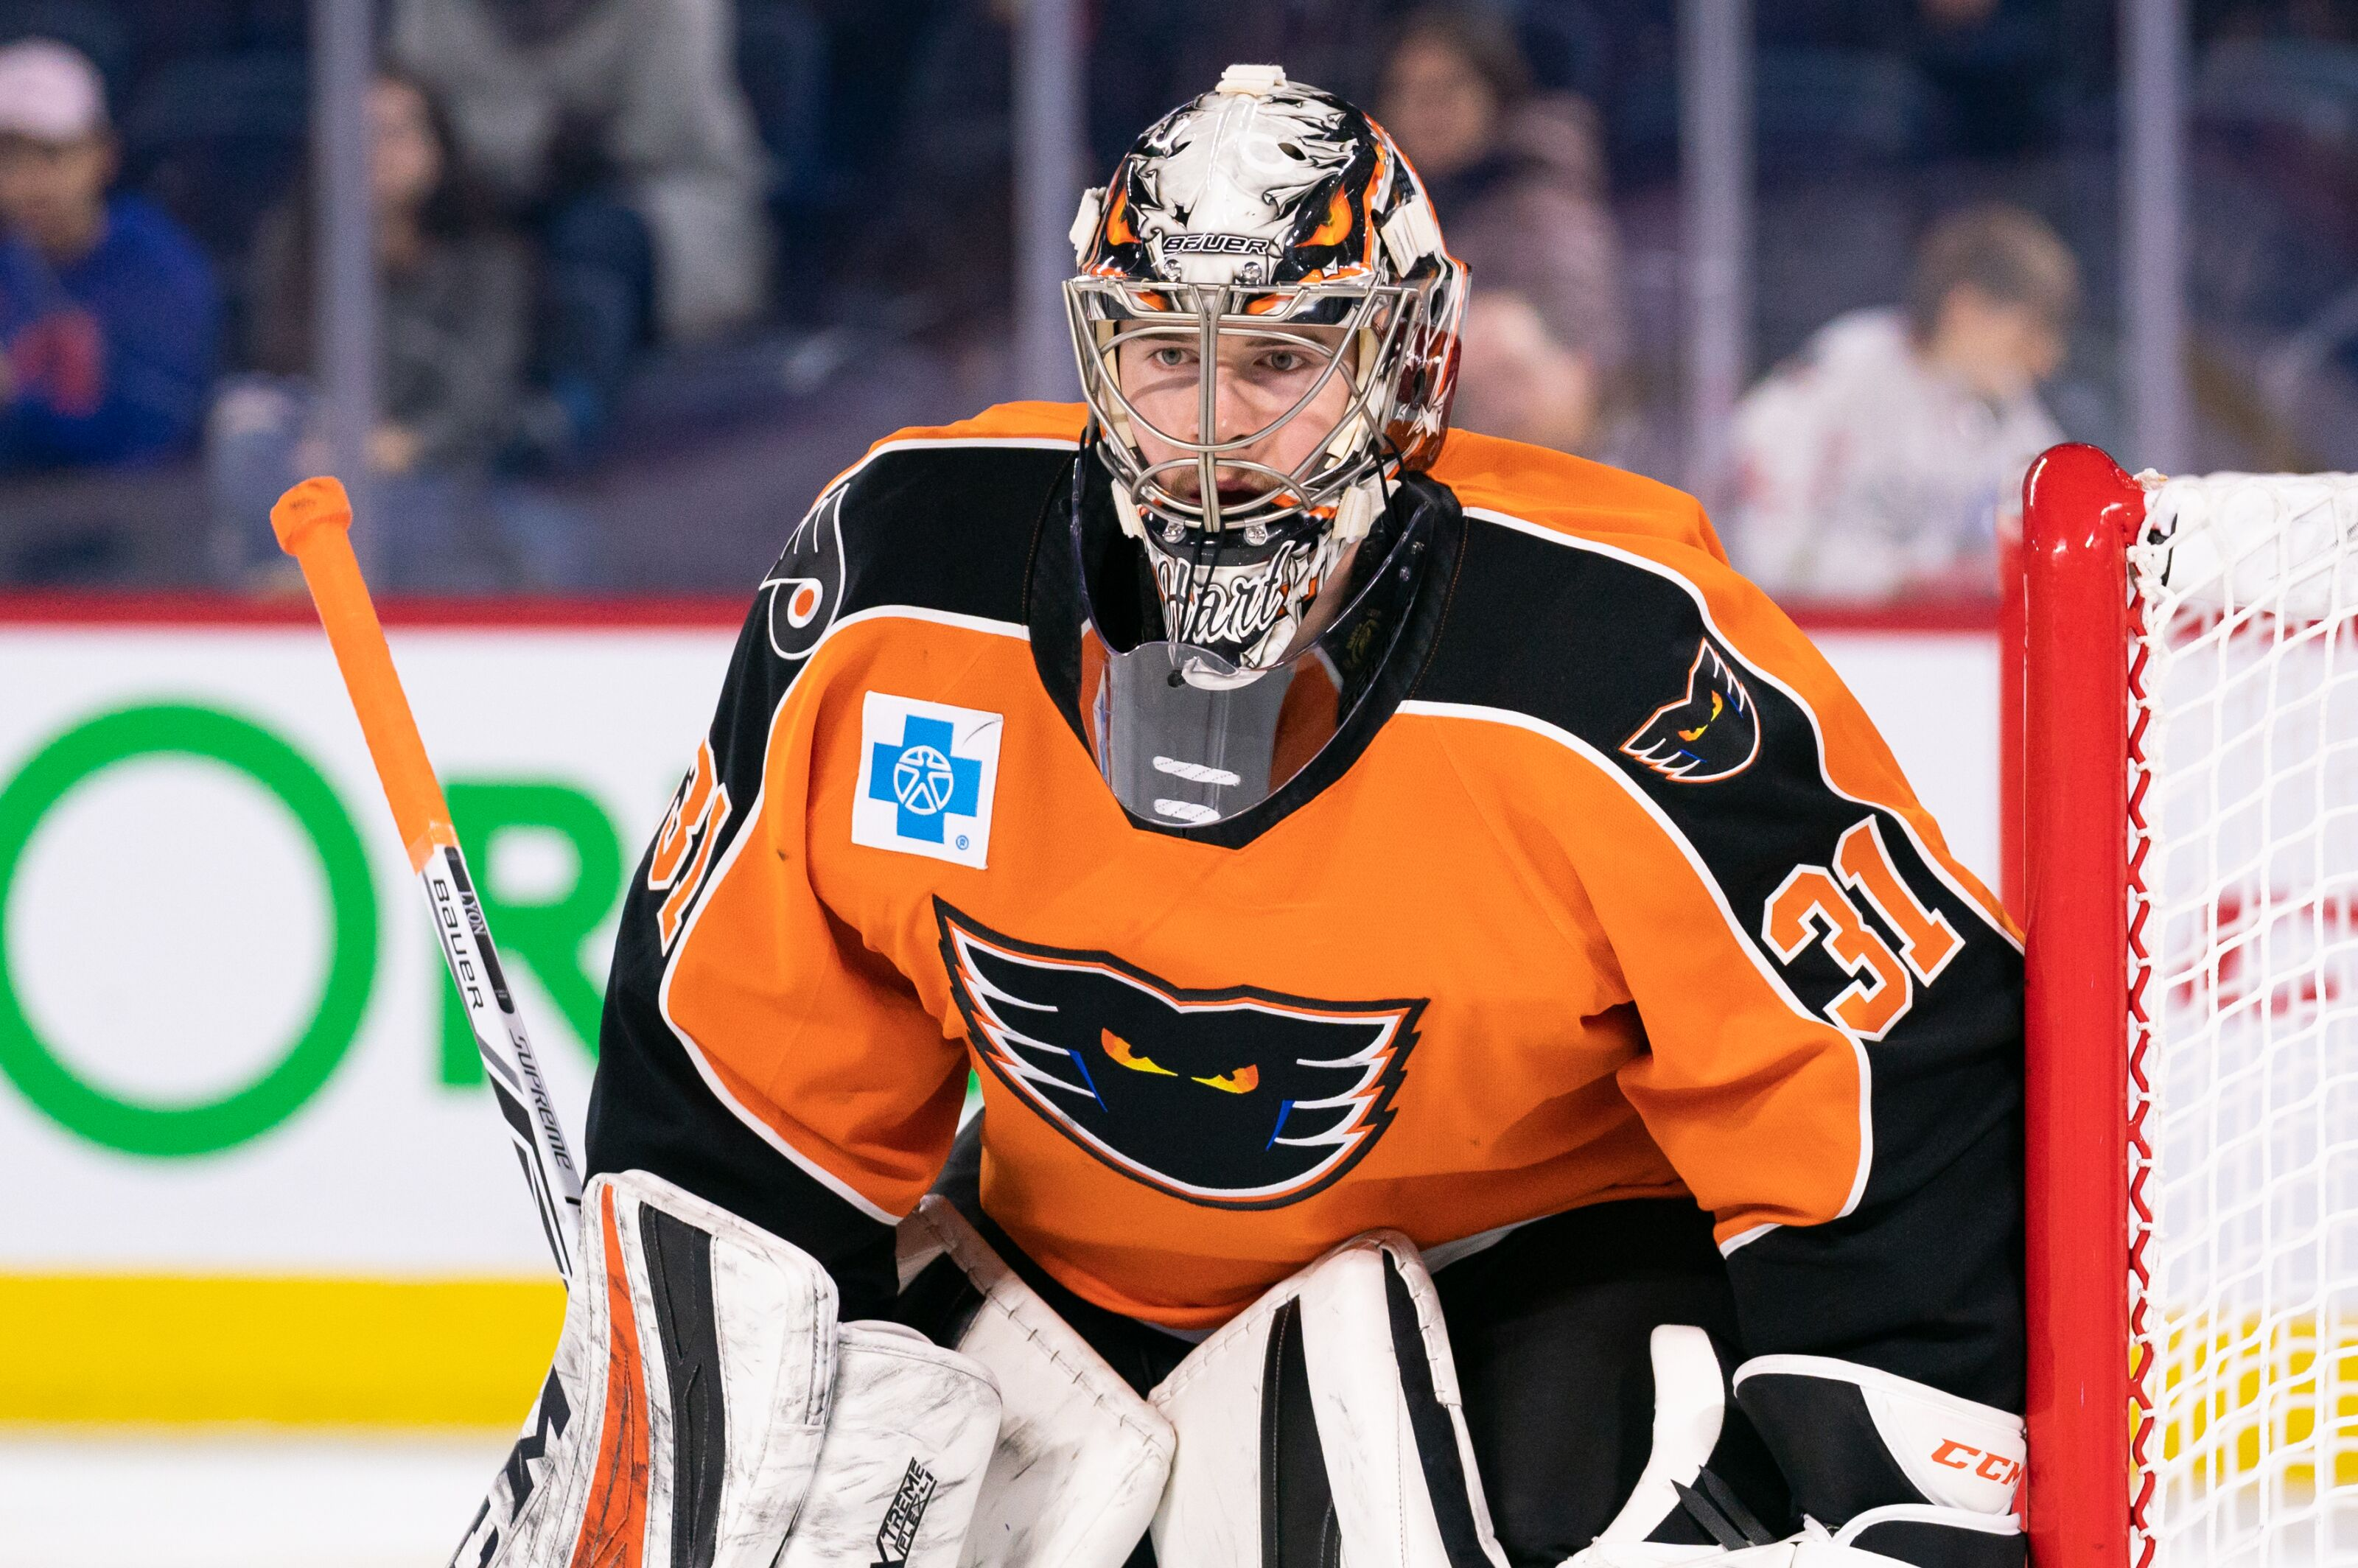 cc1ffba2dad Carter Hart gets his chance to shine in Philadelphia